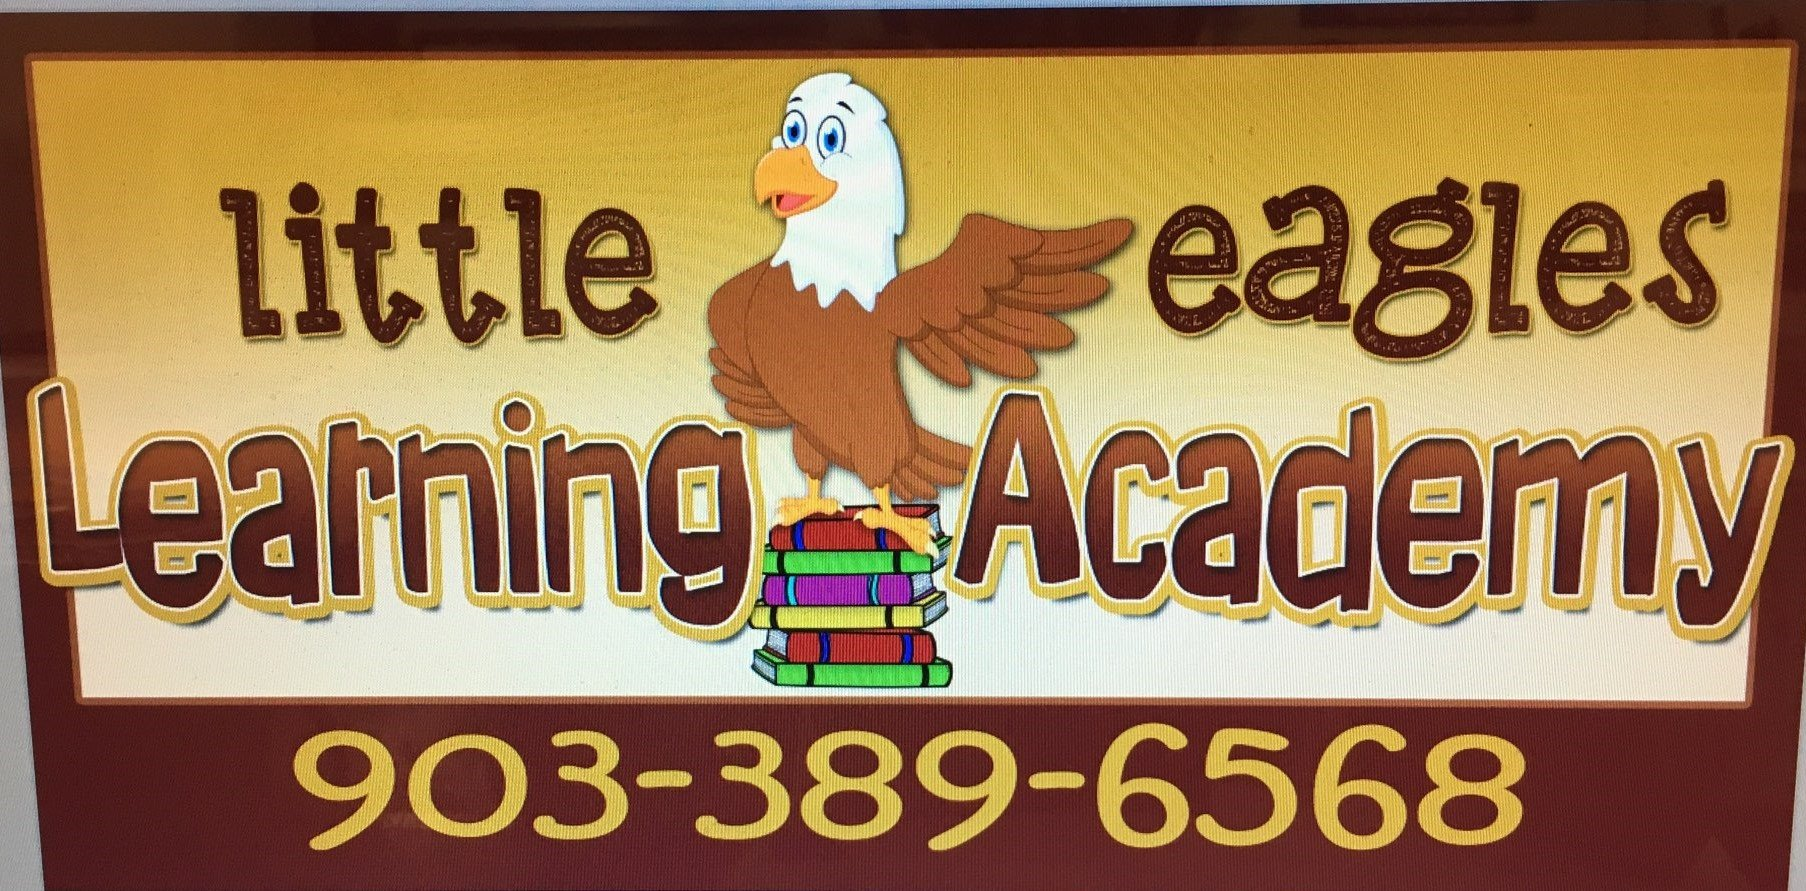 Little Eagles Learning Academy